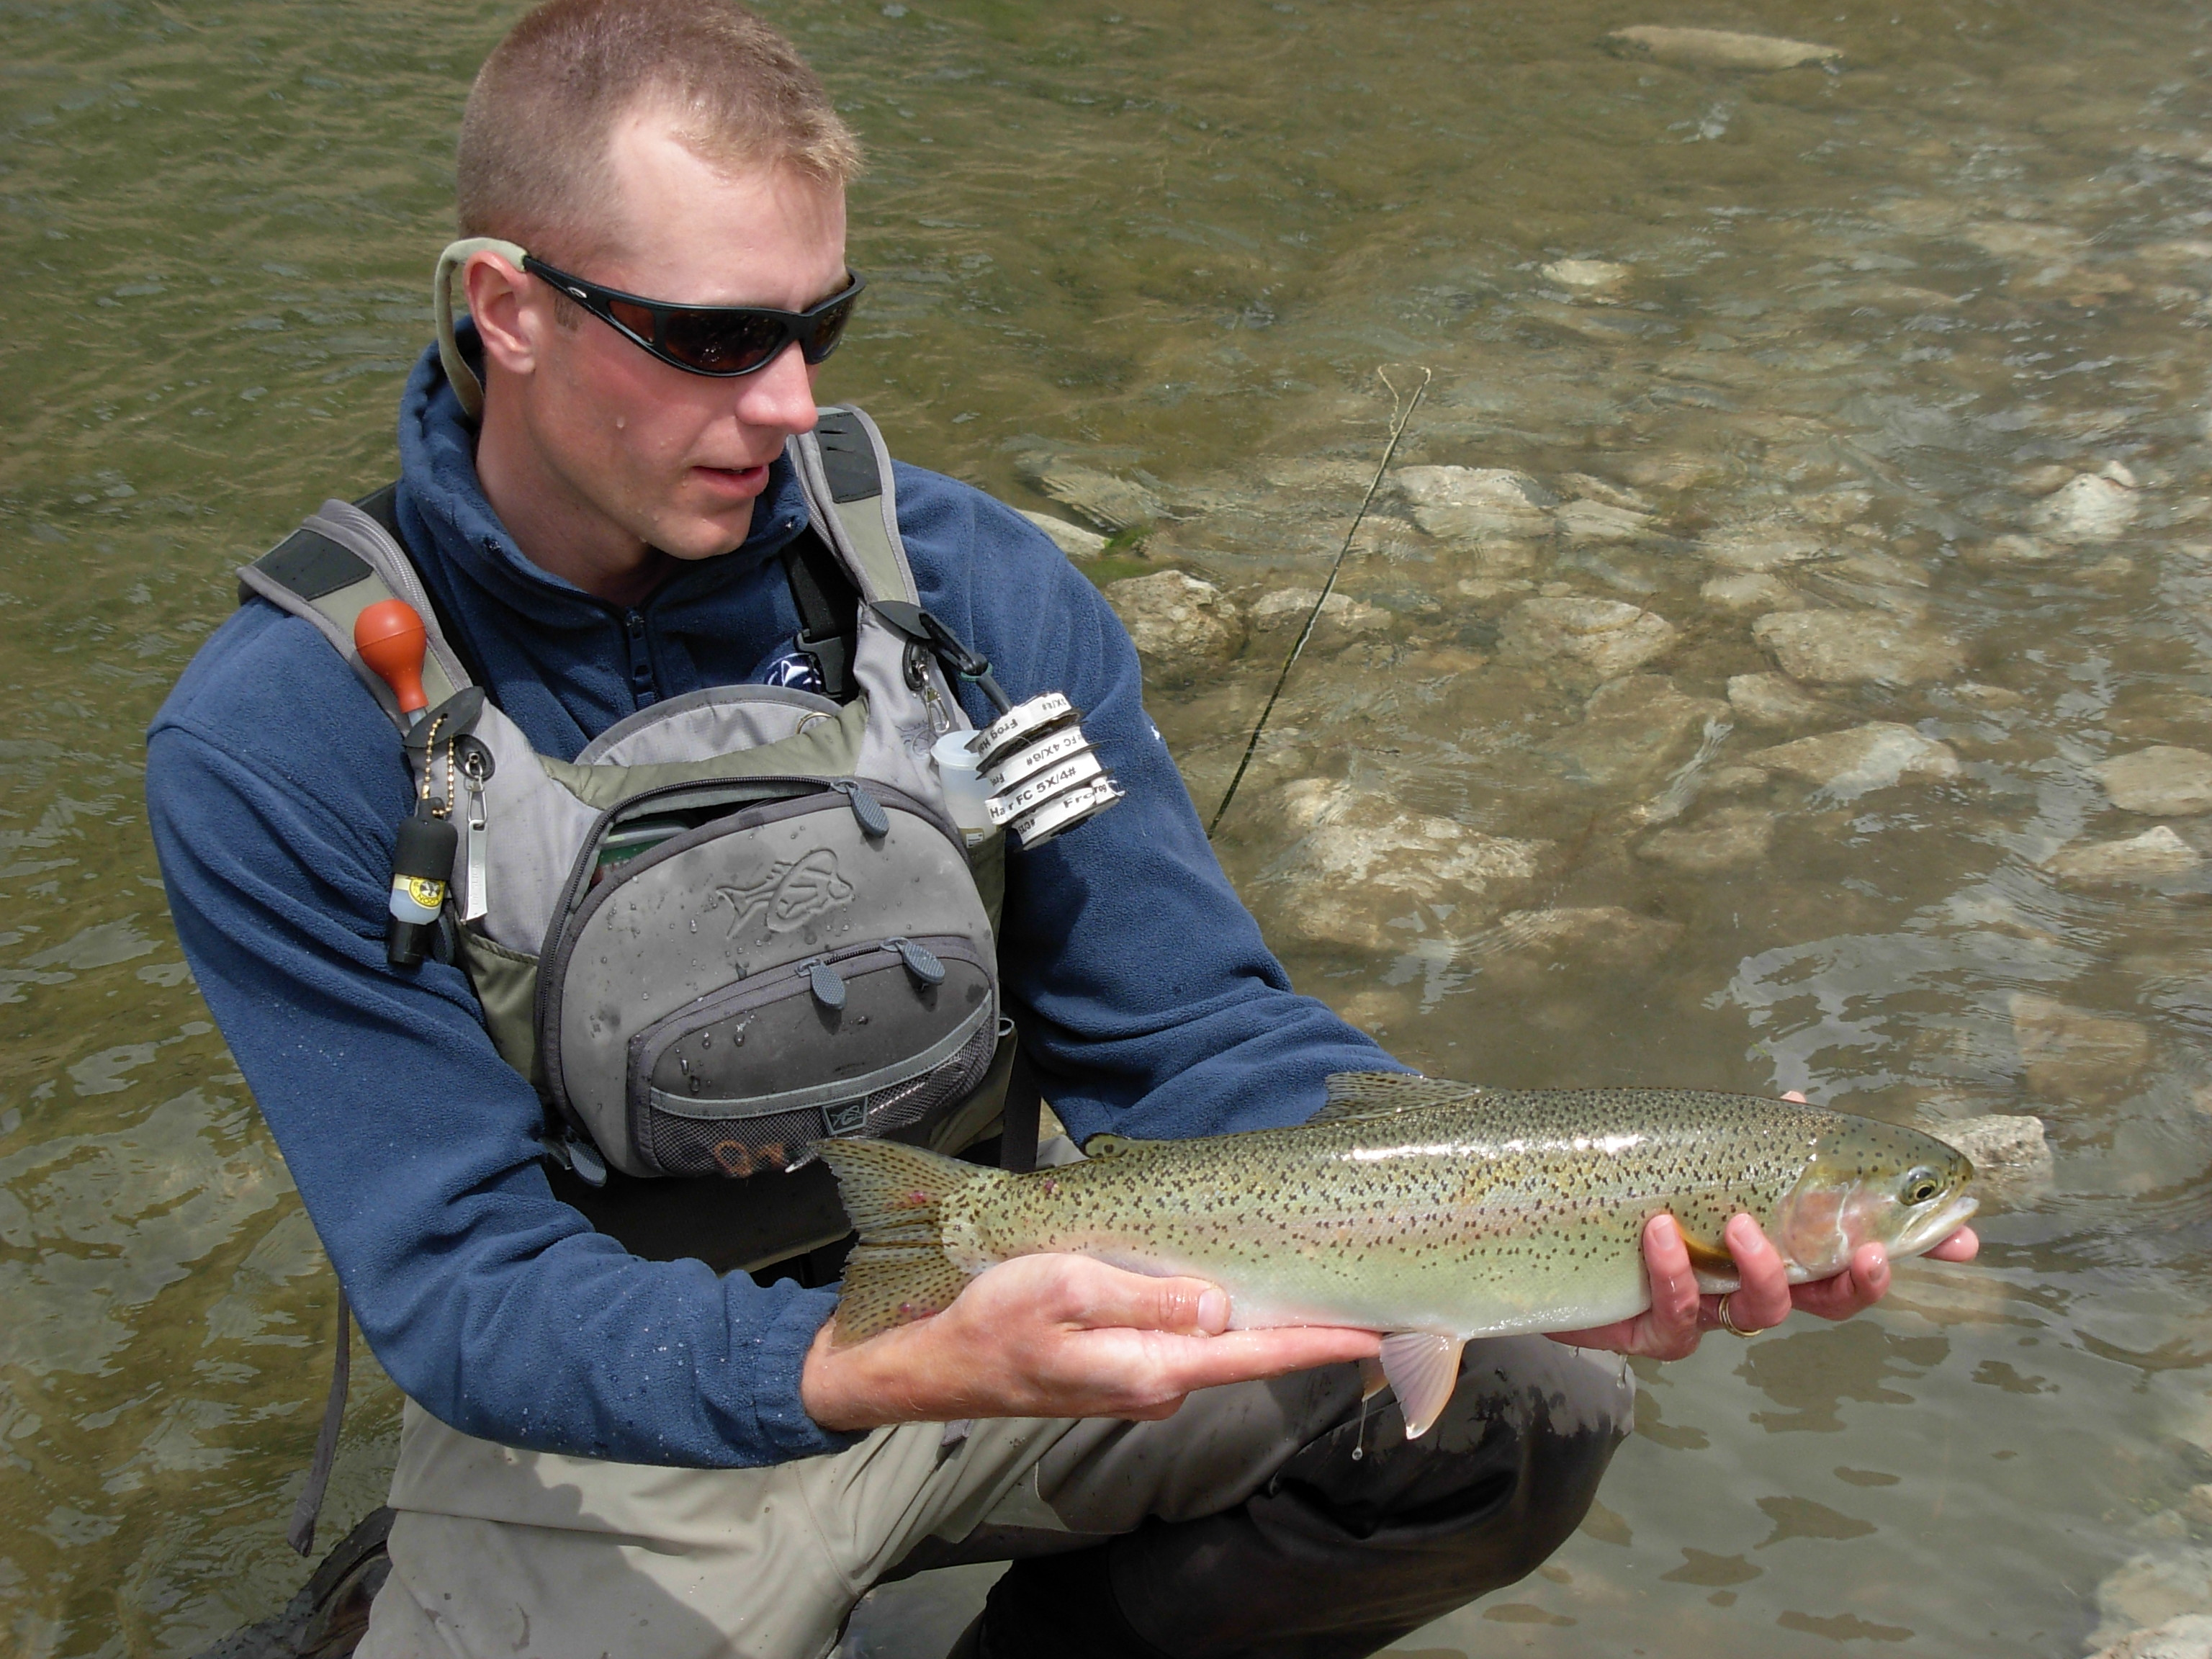 Trout do at least 90% of their feeding subsurface.  That is a proven fact.  To take advantage of